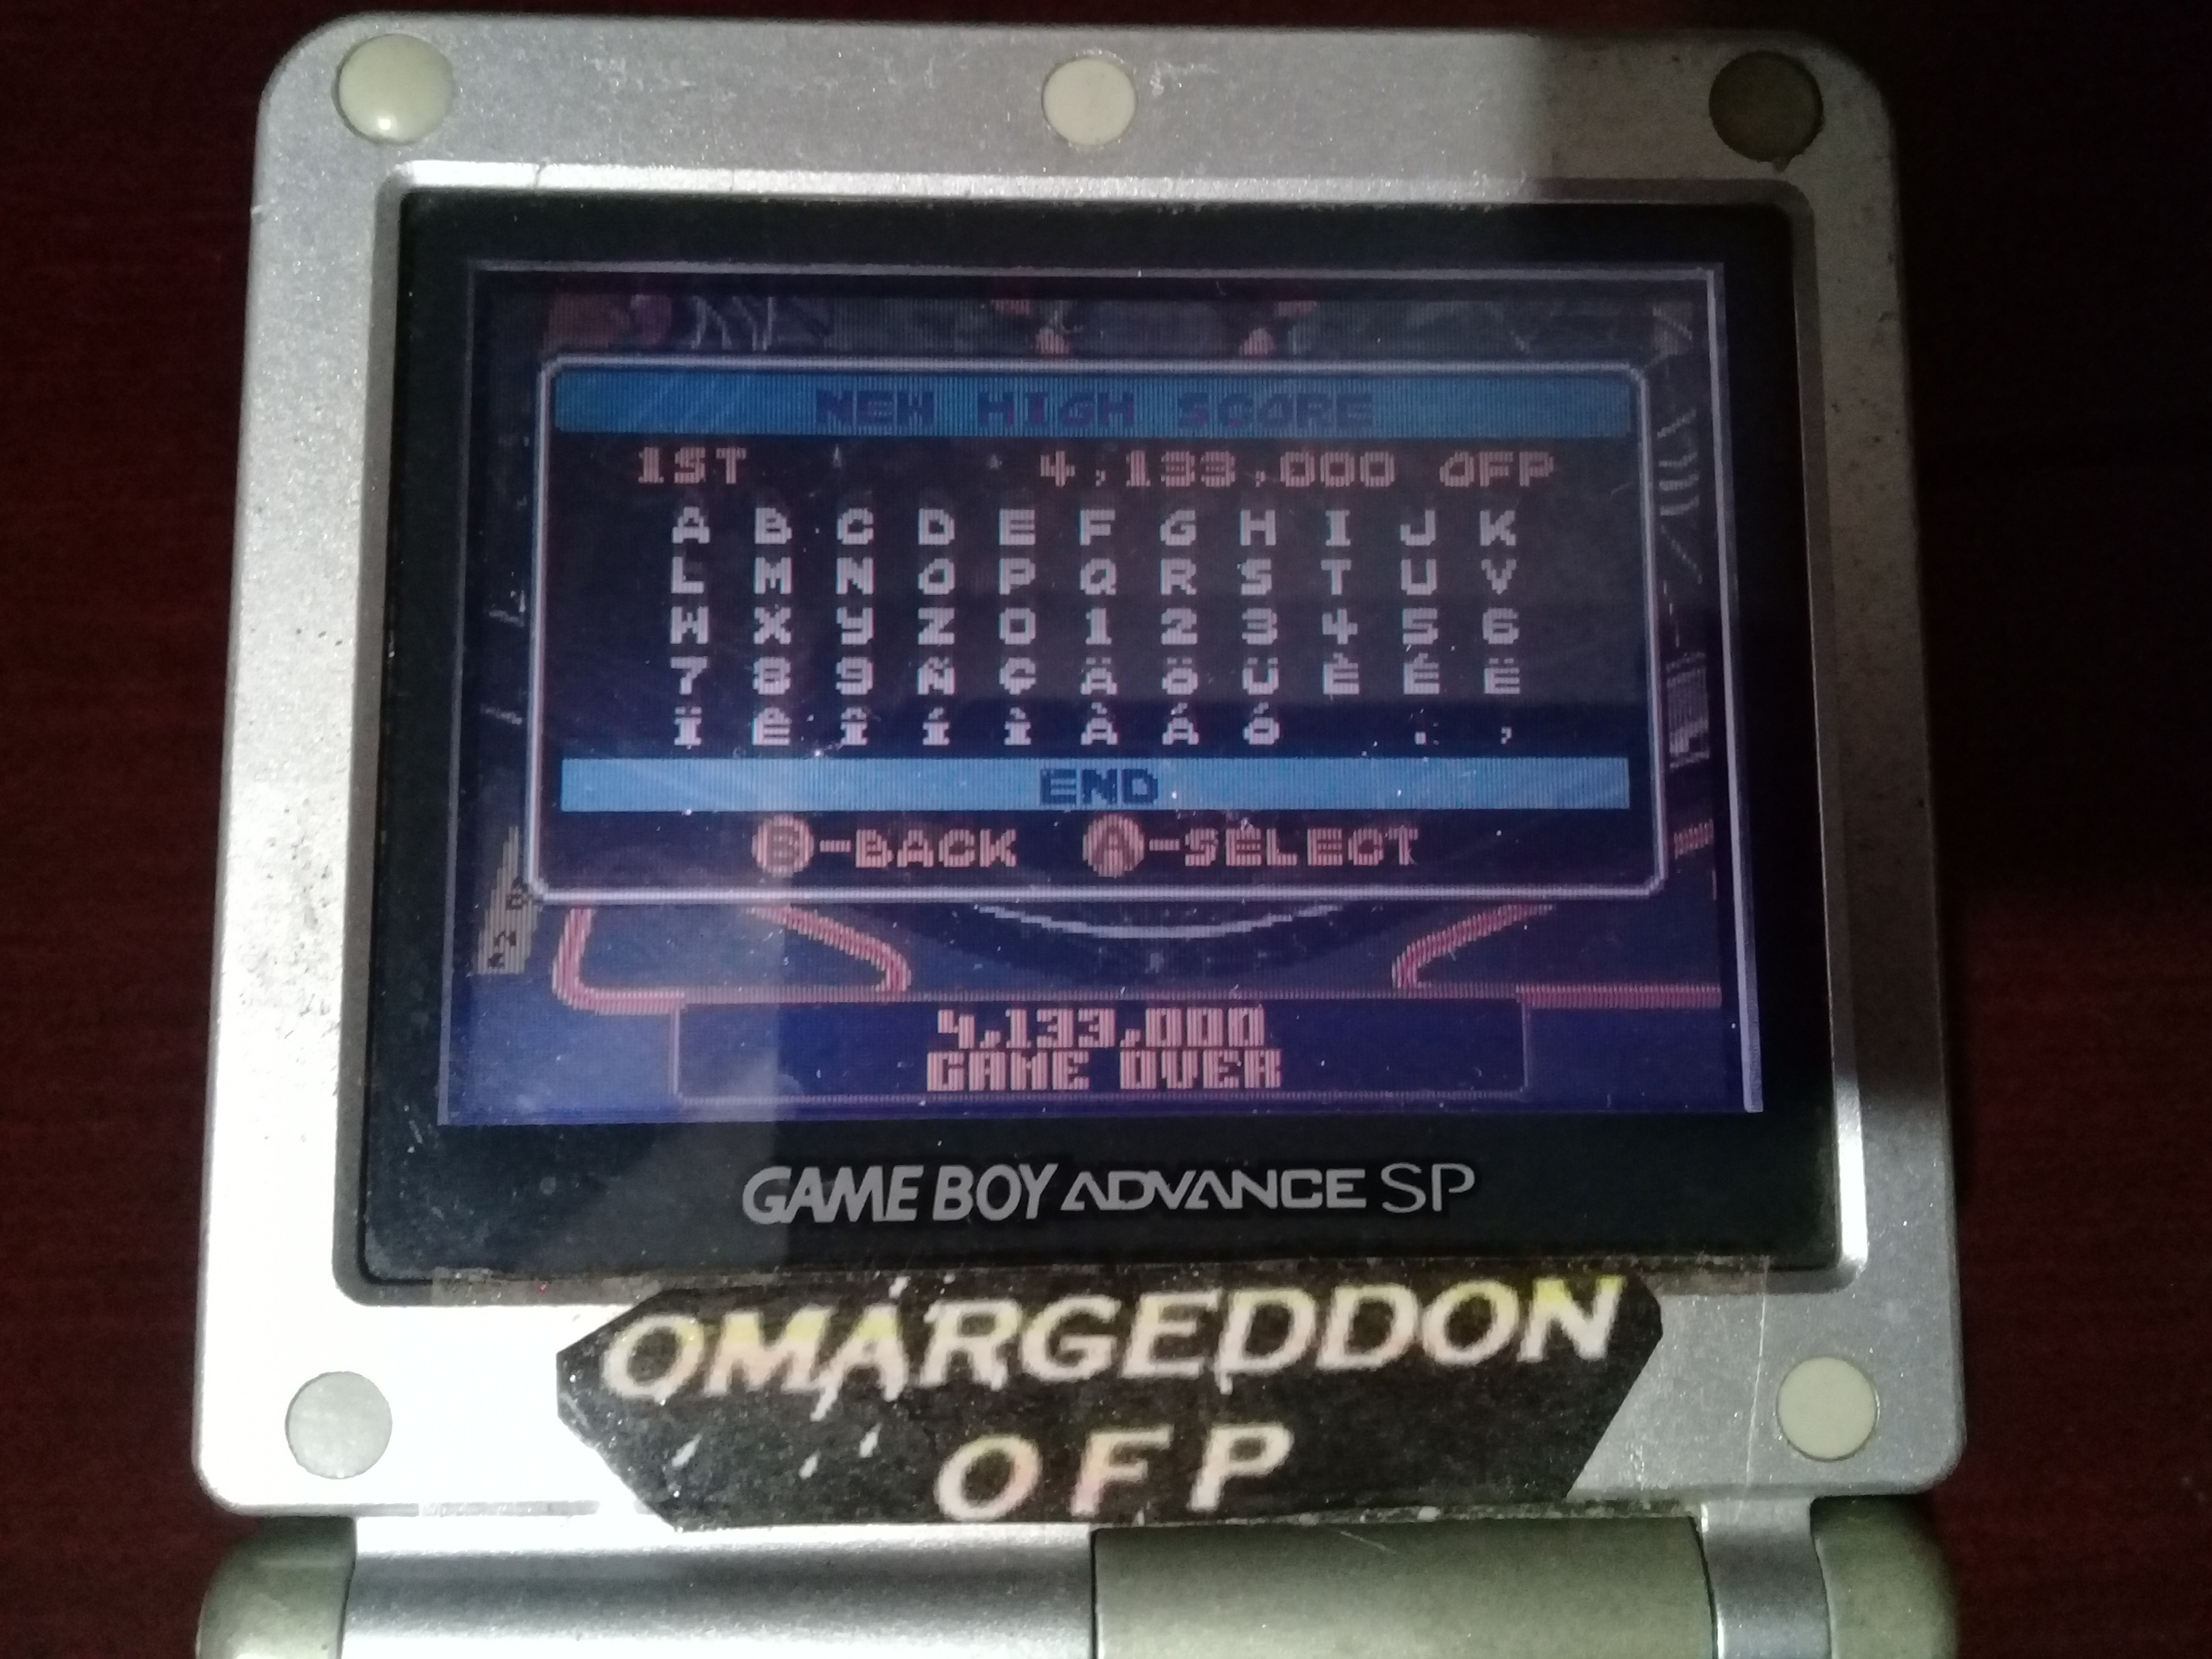 omargeddon: Pinball Advance: Tarantula [5 Balls] [Hard] (GBA) 4,133,000 points on 2019-11-02 01:50:14